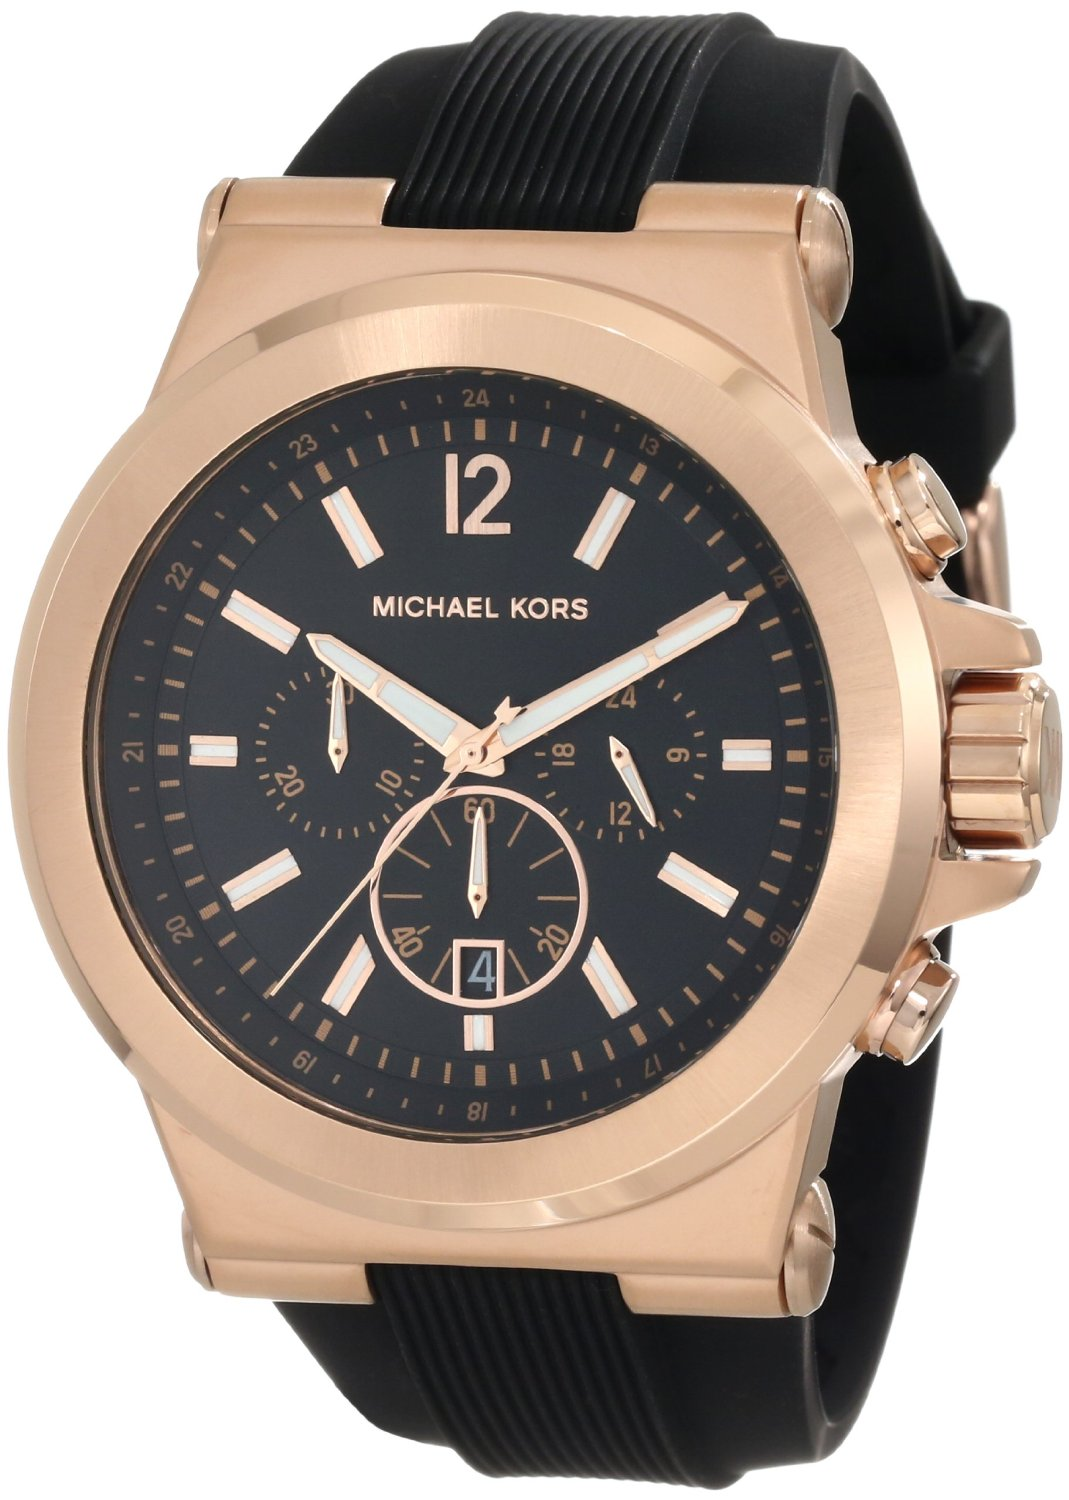 Mmichael Kors Watches Latest Arrivals 2014 2015 For Boys